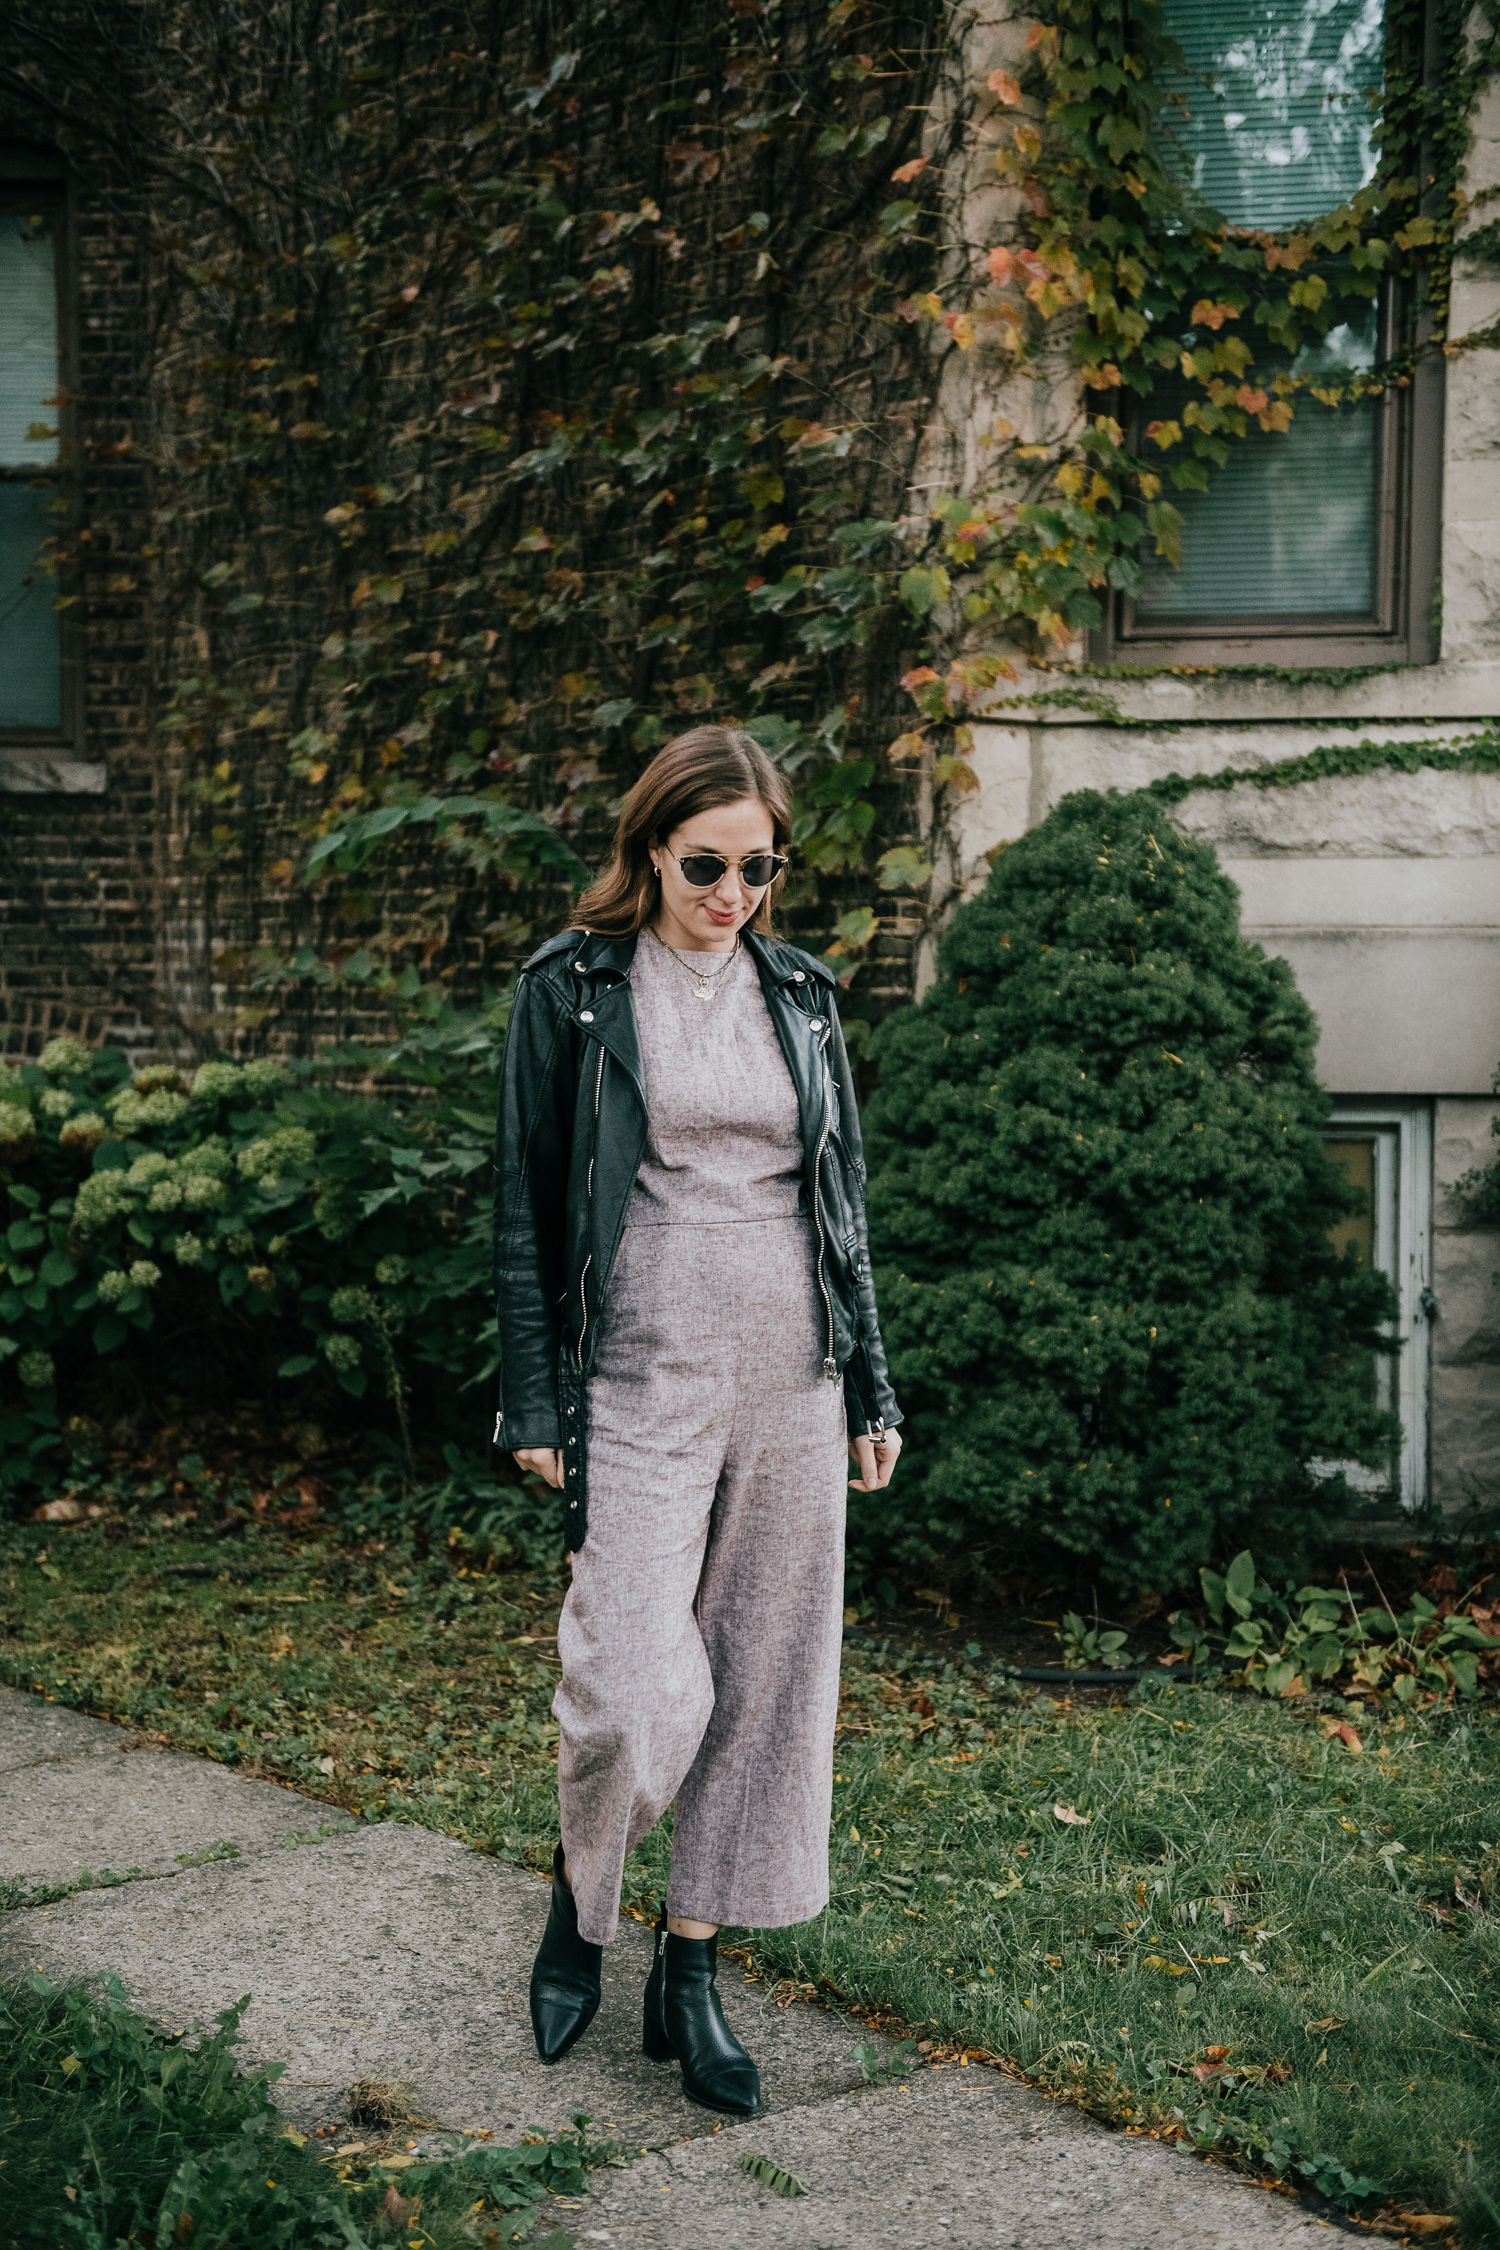 Jumpsuit for fall - A Week Of Ethical Outfits With Heart With Carly Gerber From Hippie + Heart on The Good Trade